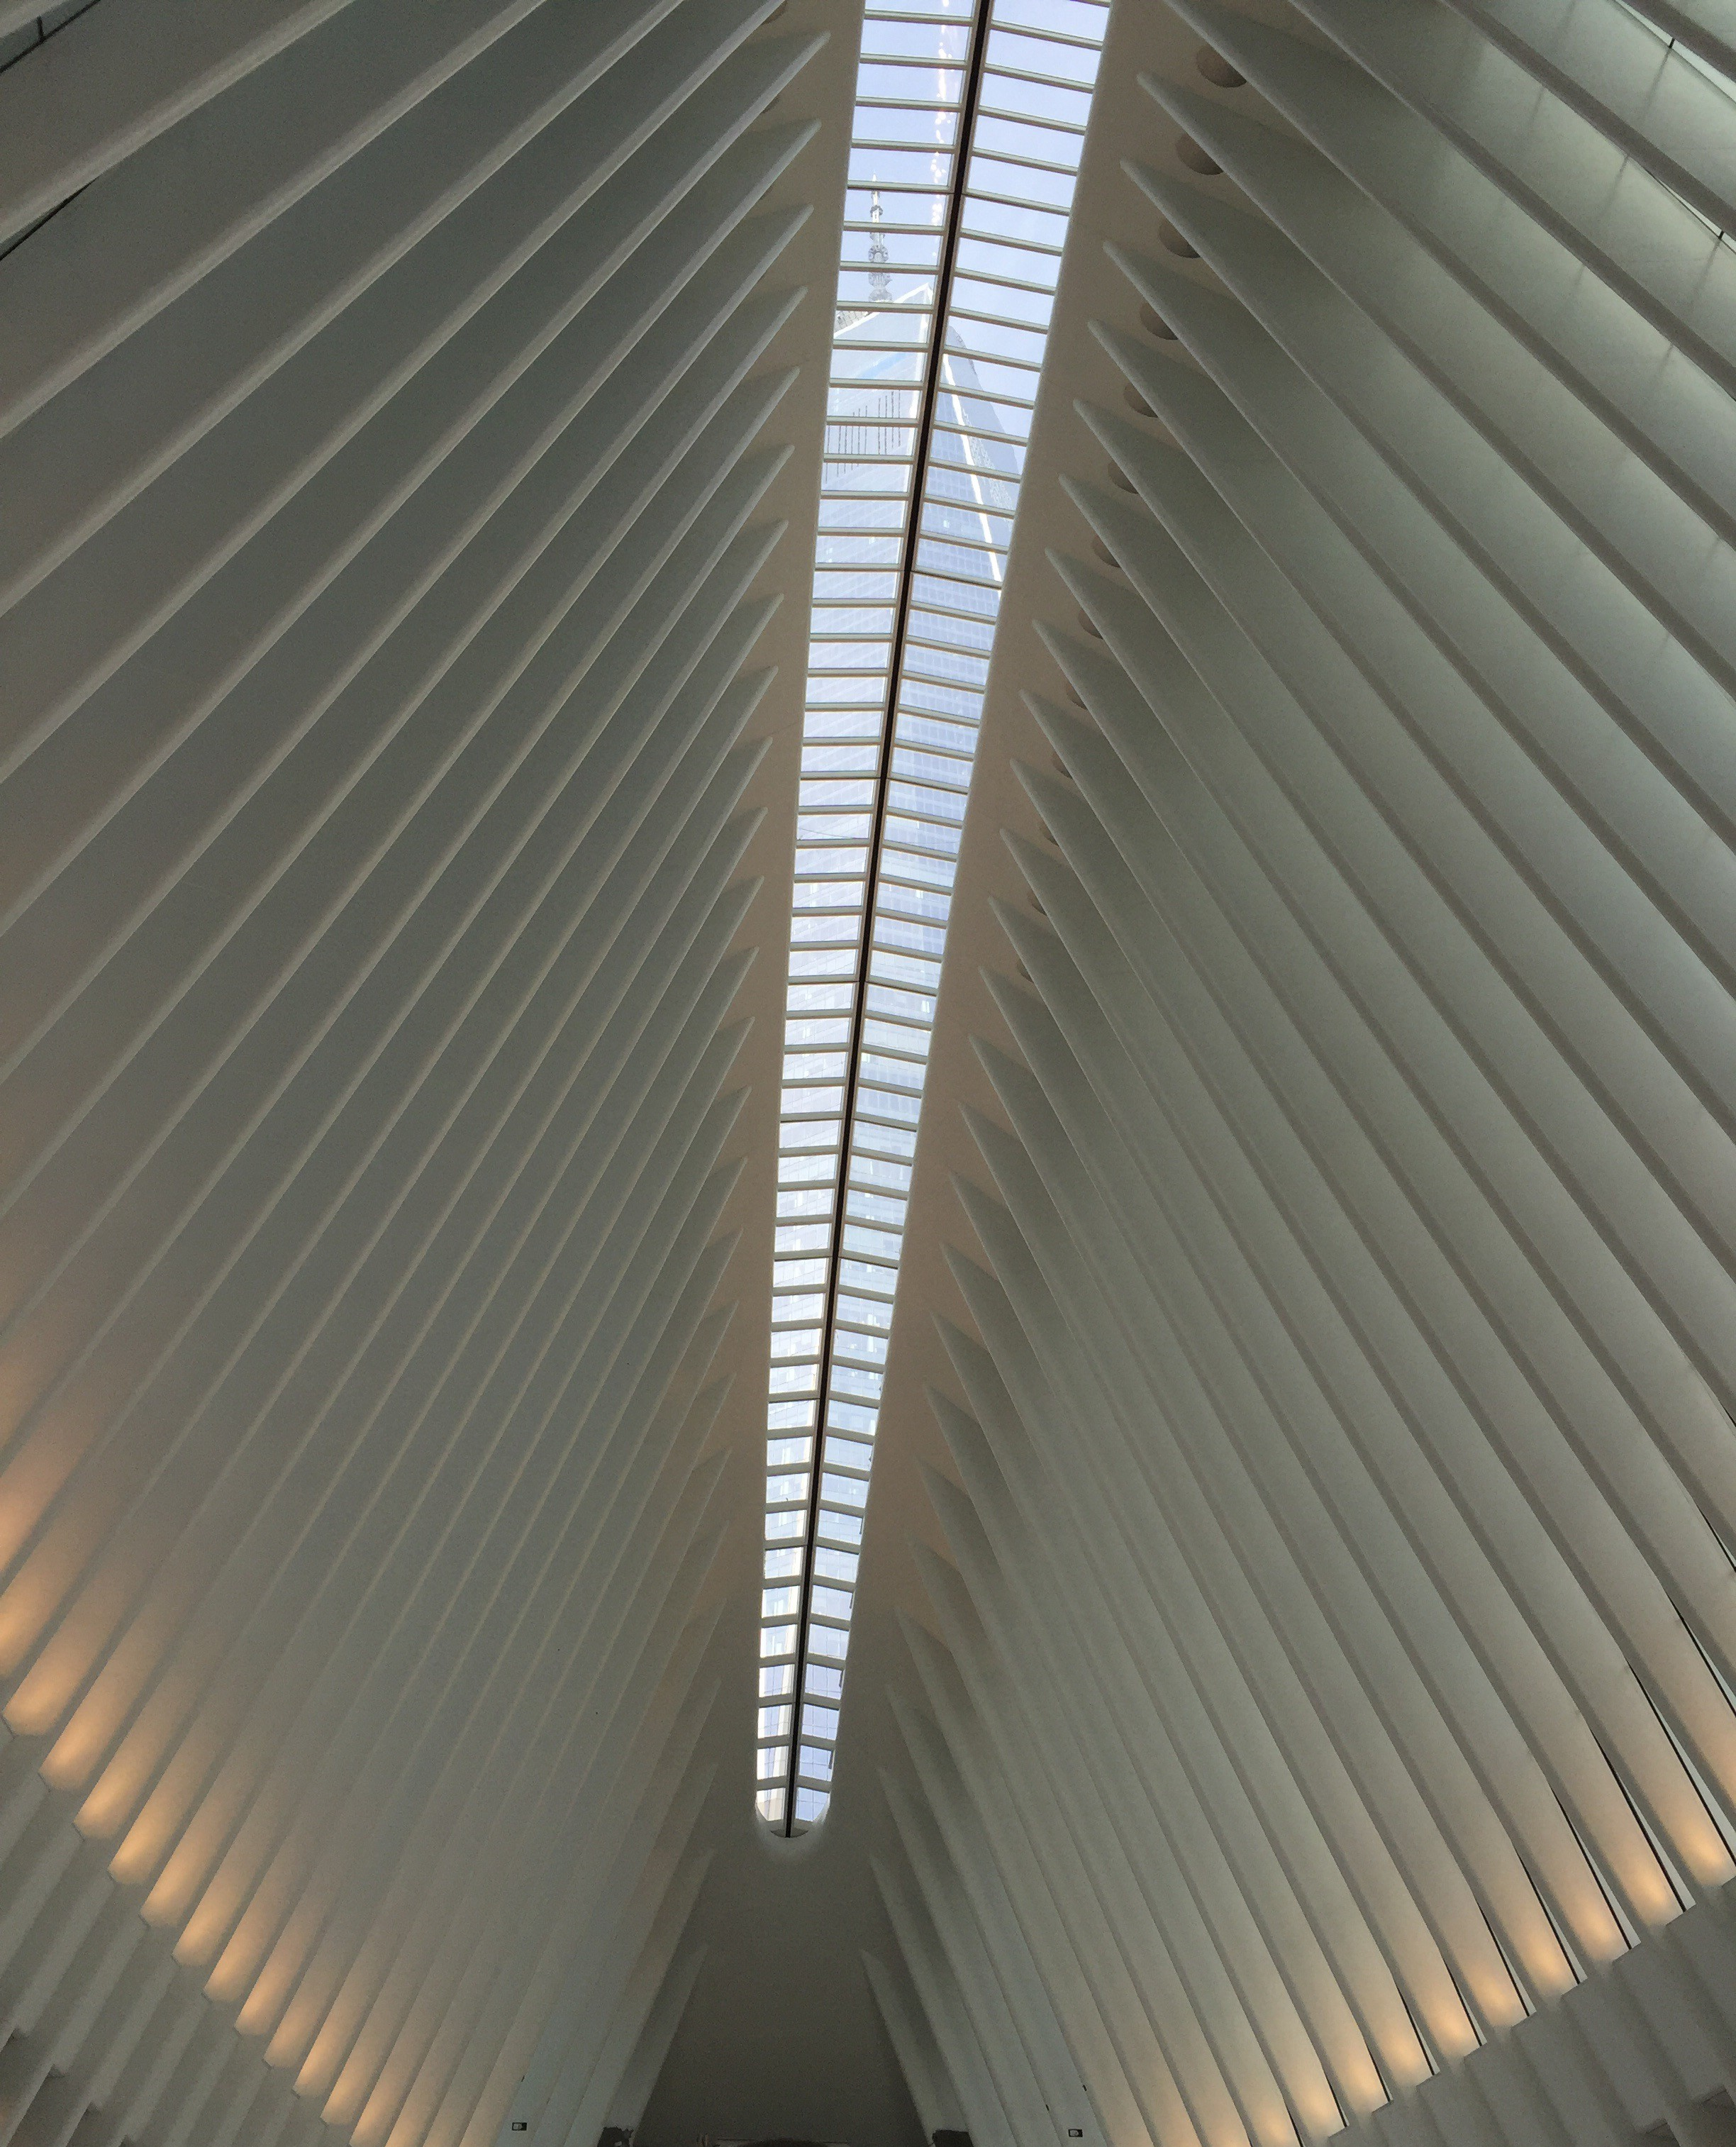 1 WTC seen through the skylights atop the Oculus.